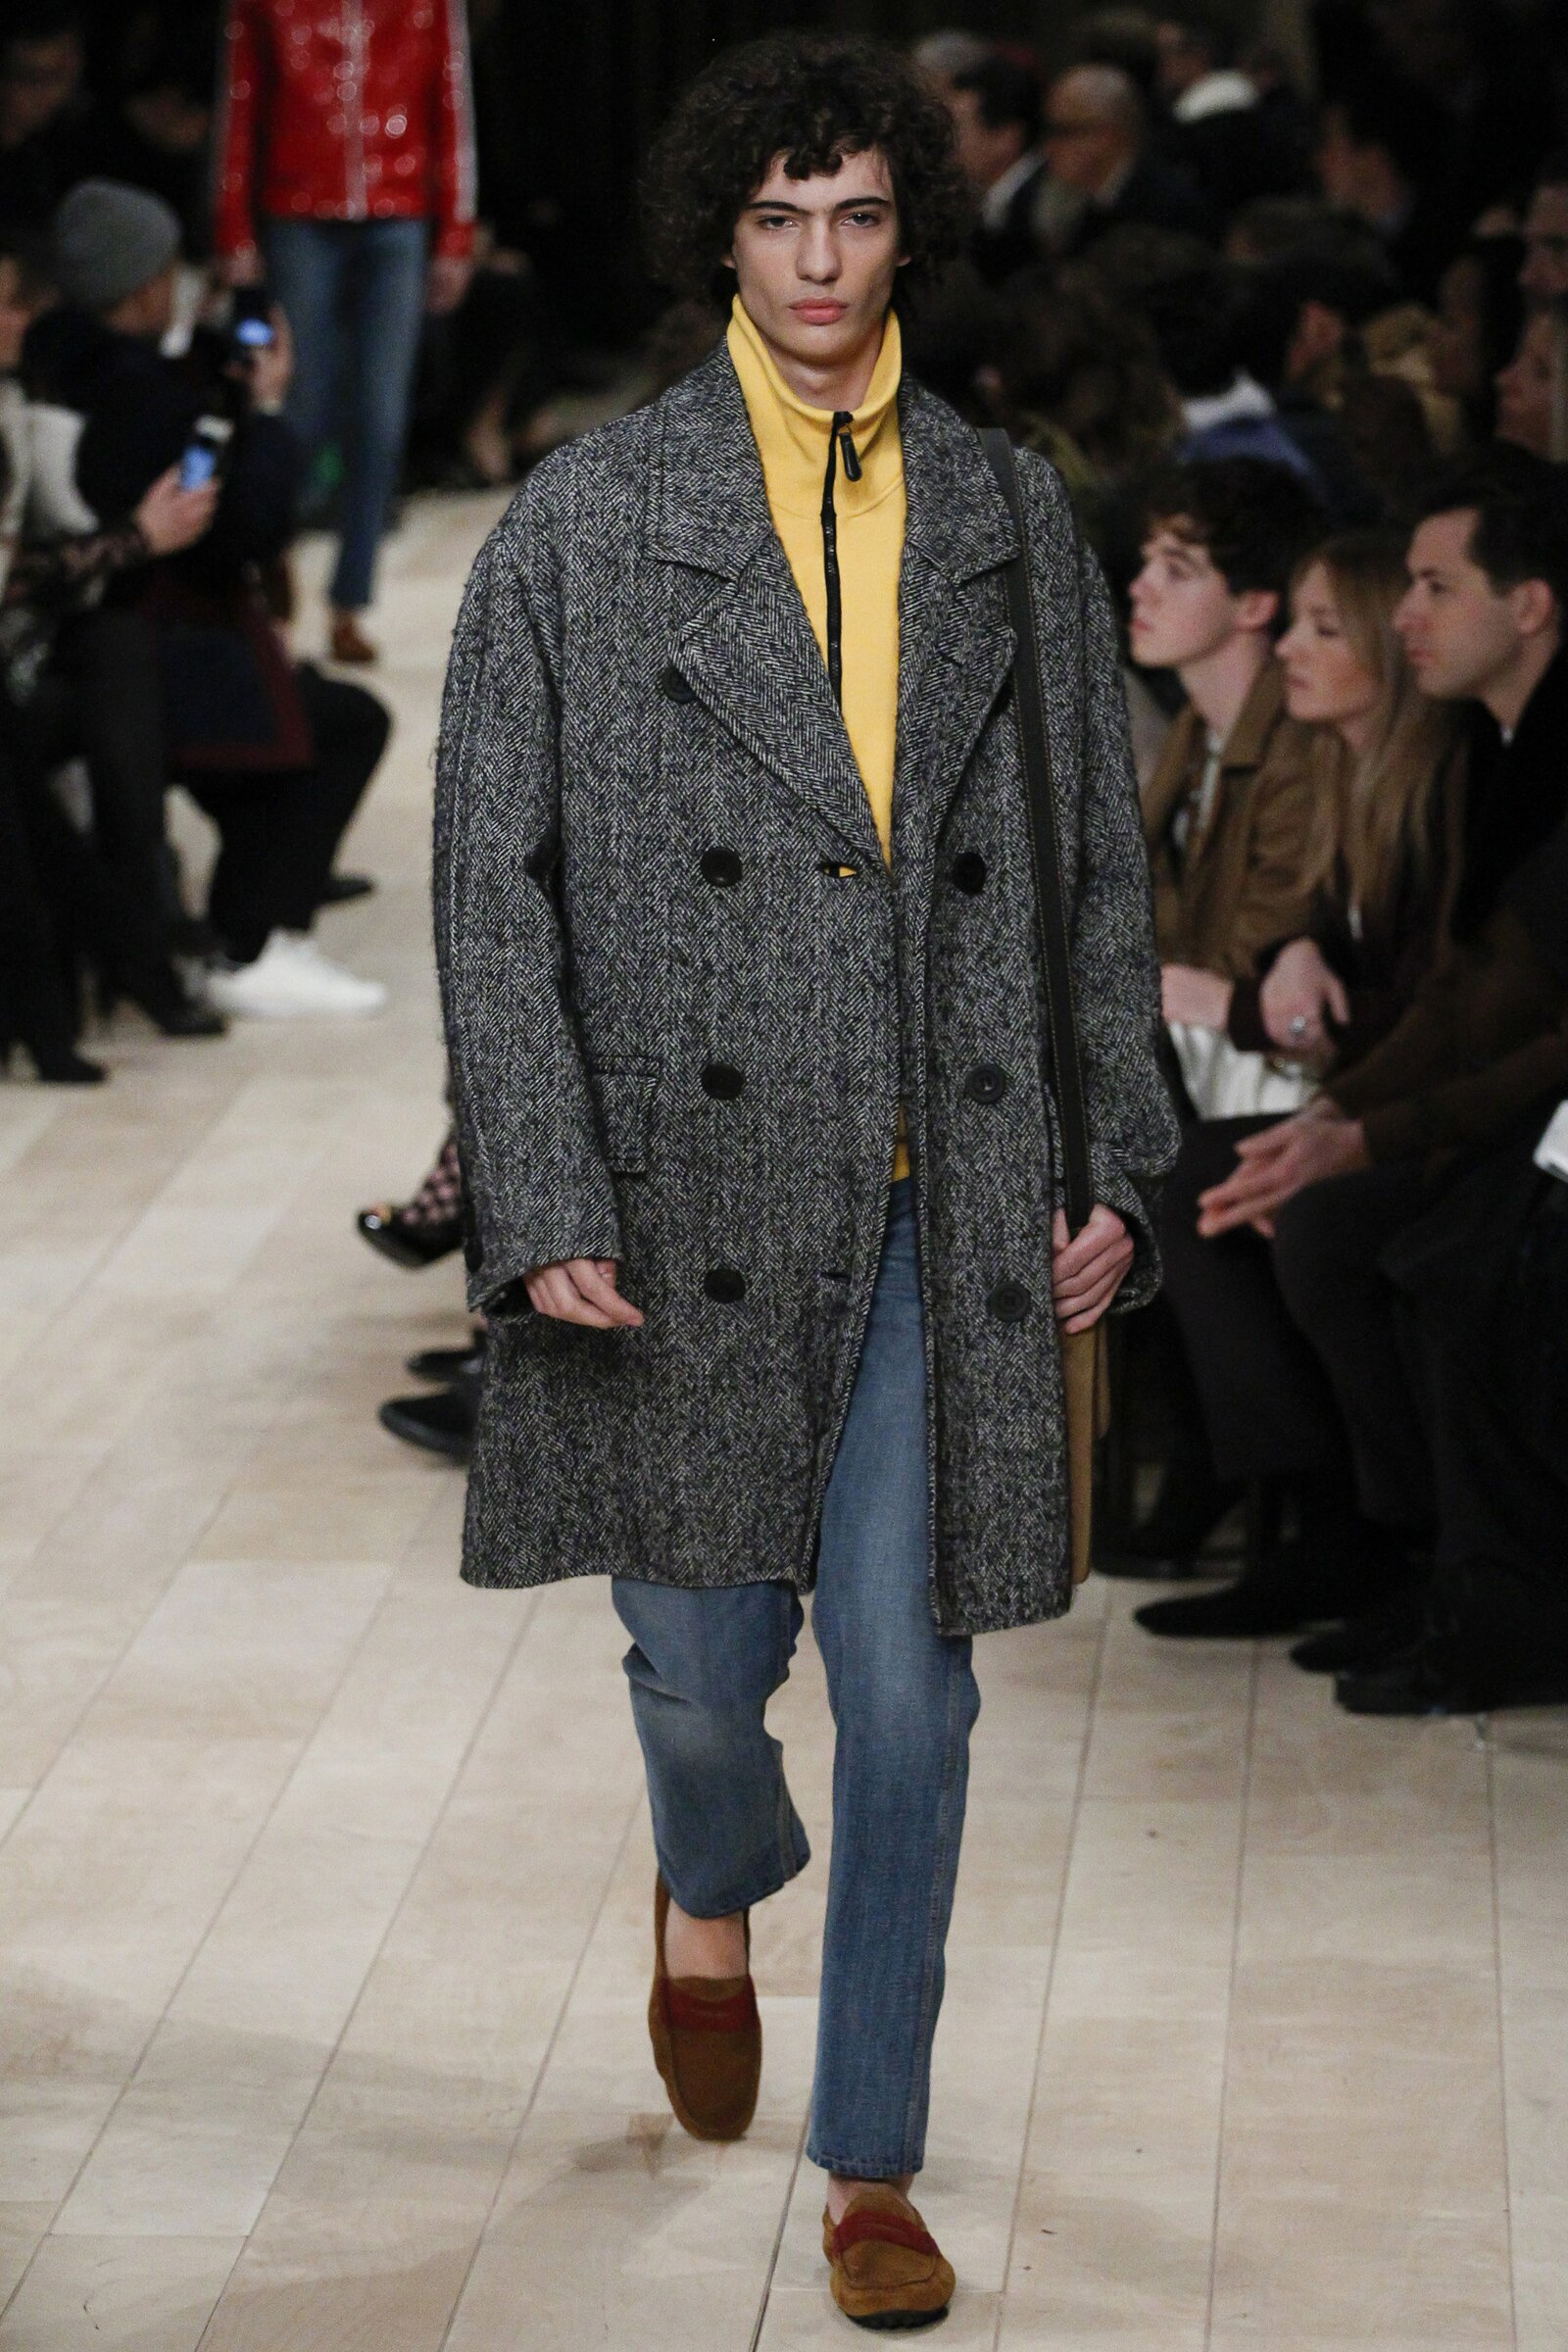 Burberry - London Collections: Men AW 2016